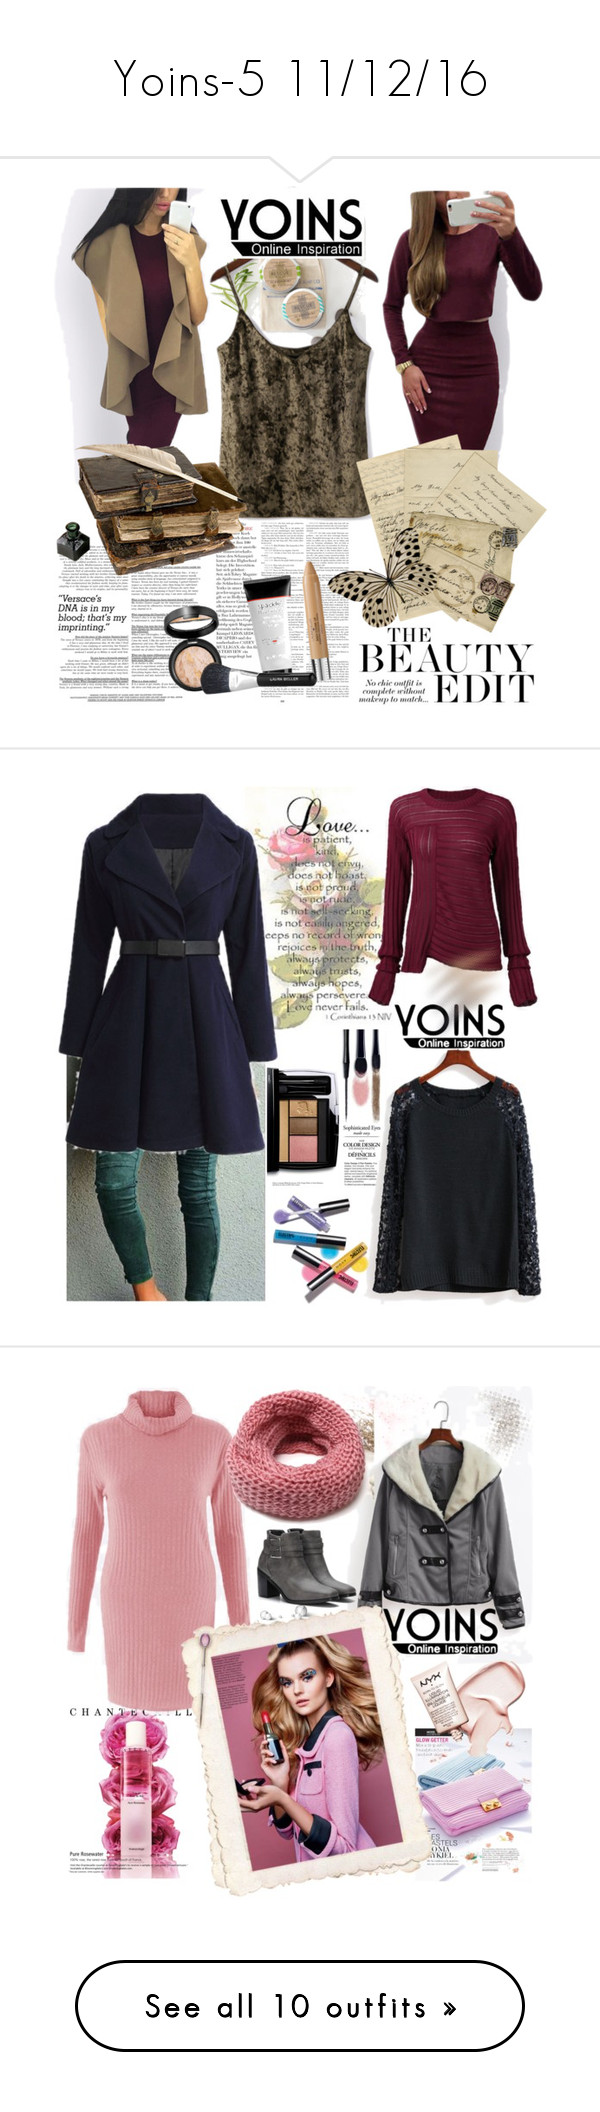 """""""Yoins-5 11/12/16"""" by irinavsl ❤ liked on Polyvore featuring yoins, yoinscollection, loveyoins, Lancôme, Avon, Chantecaille, Korres, Overland Sheepskin Co., Marc Jacobs and WALL"""